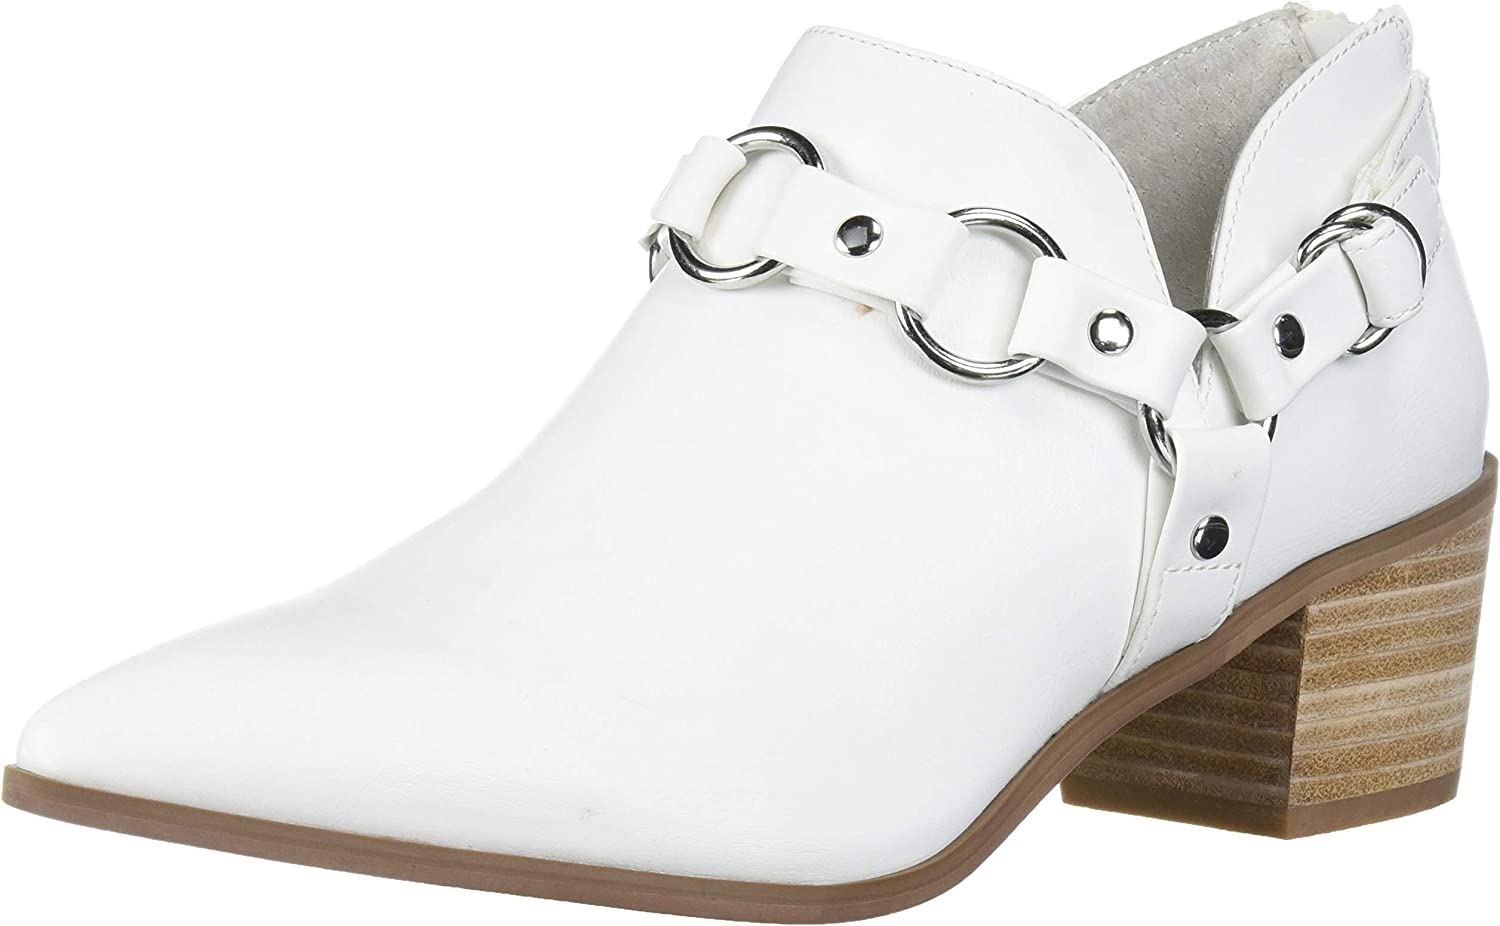 Carlos by Carlos Santana Women's Pointer Ankle Boot